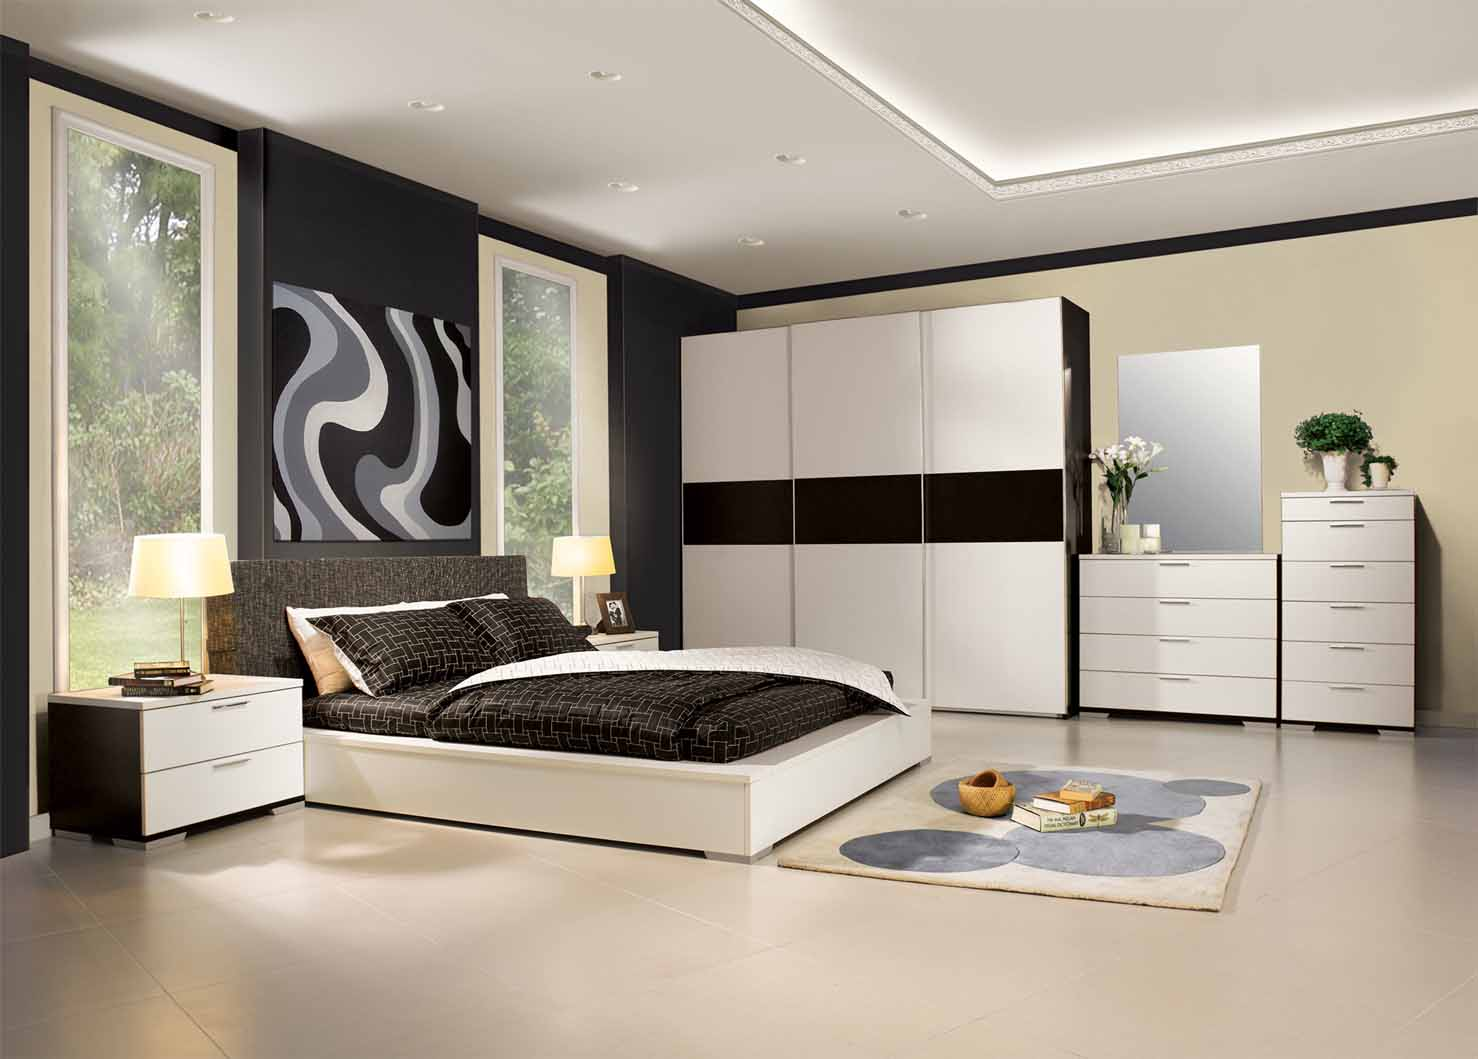 Modern bedroom design fouadtalal - Design for bedroom pics ...